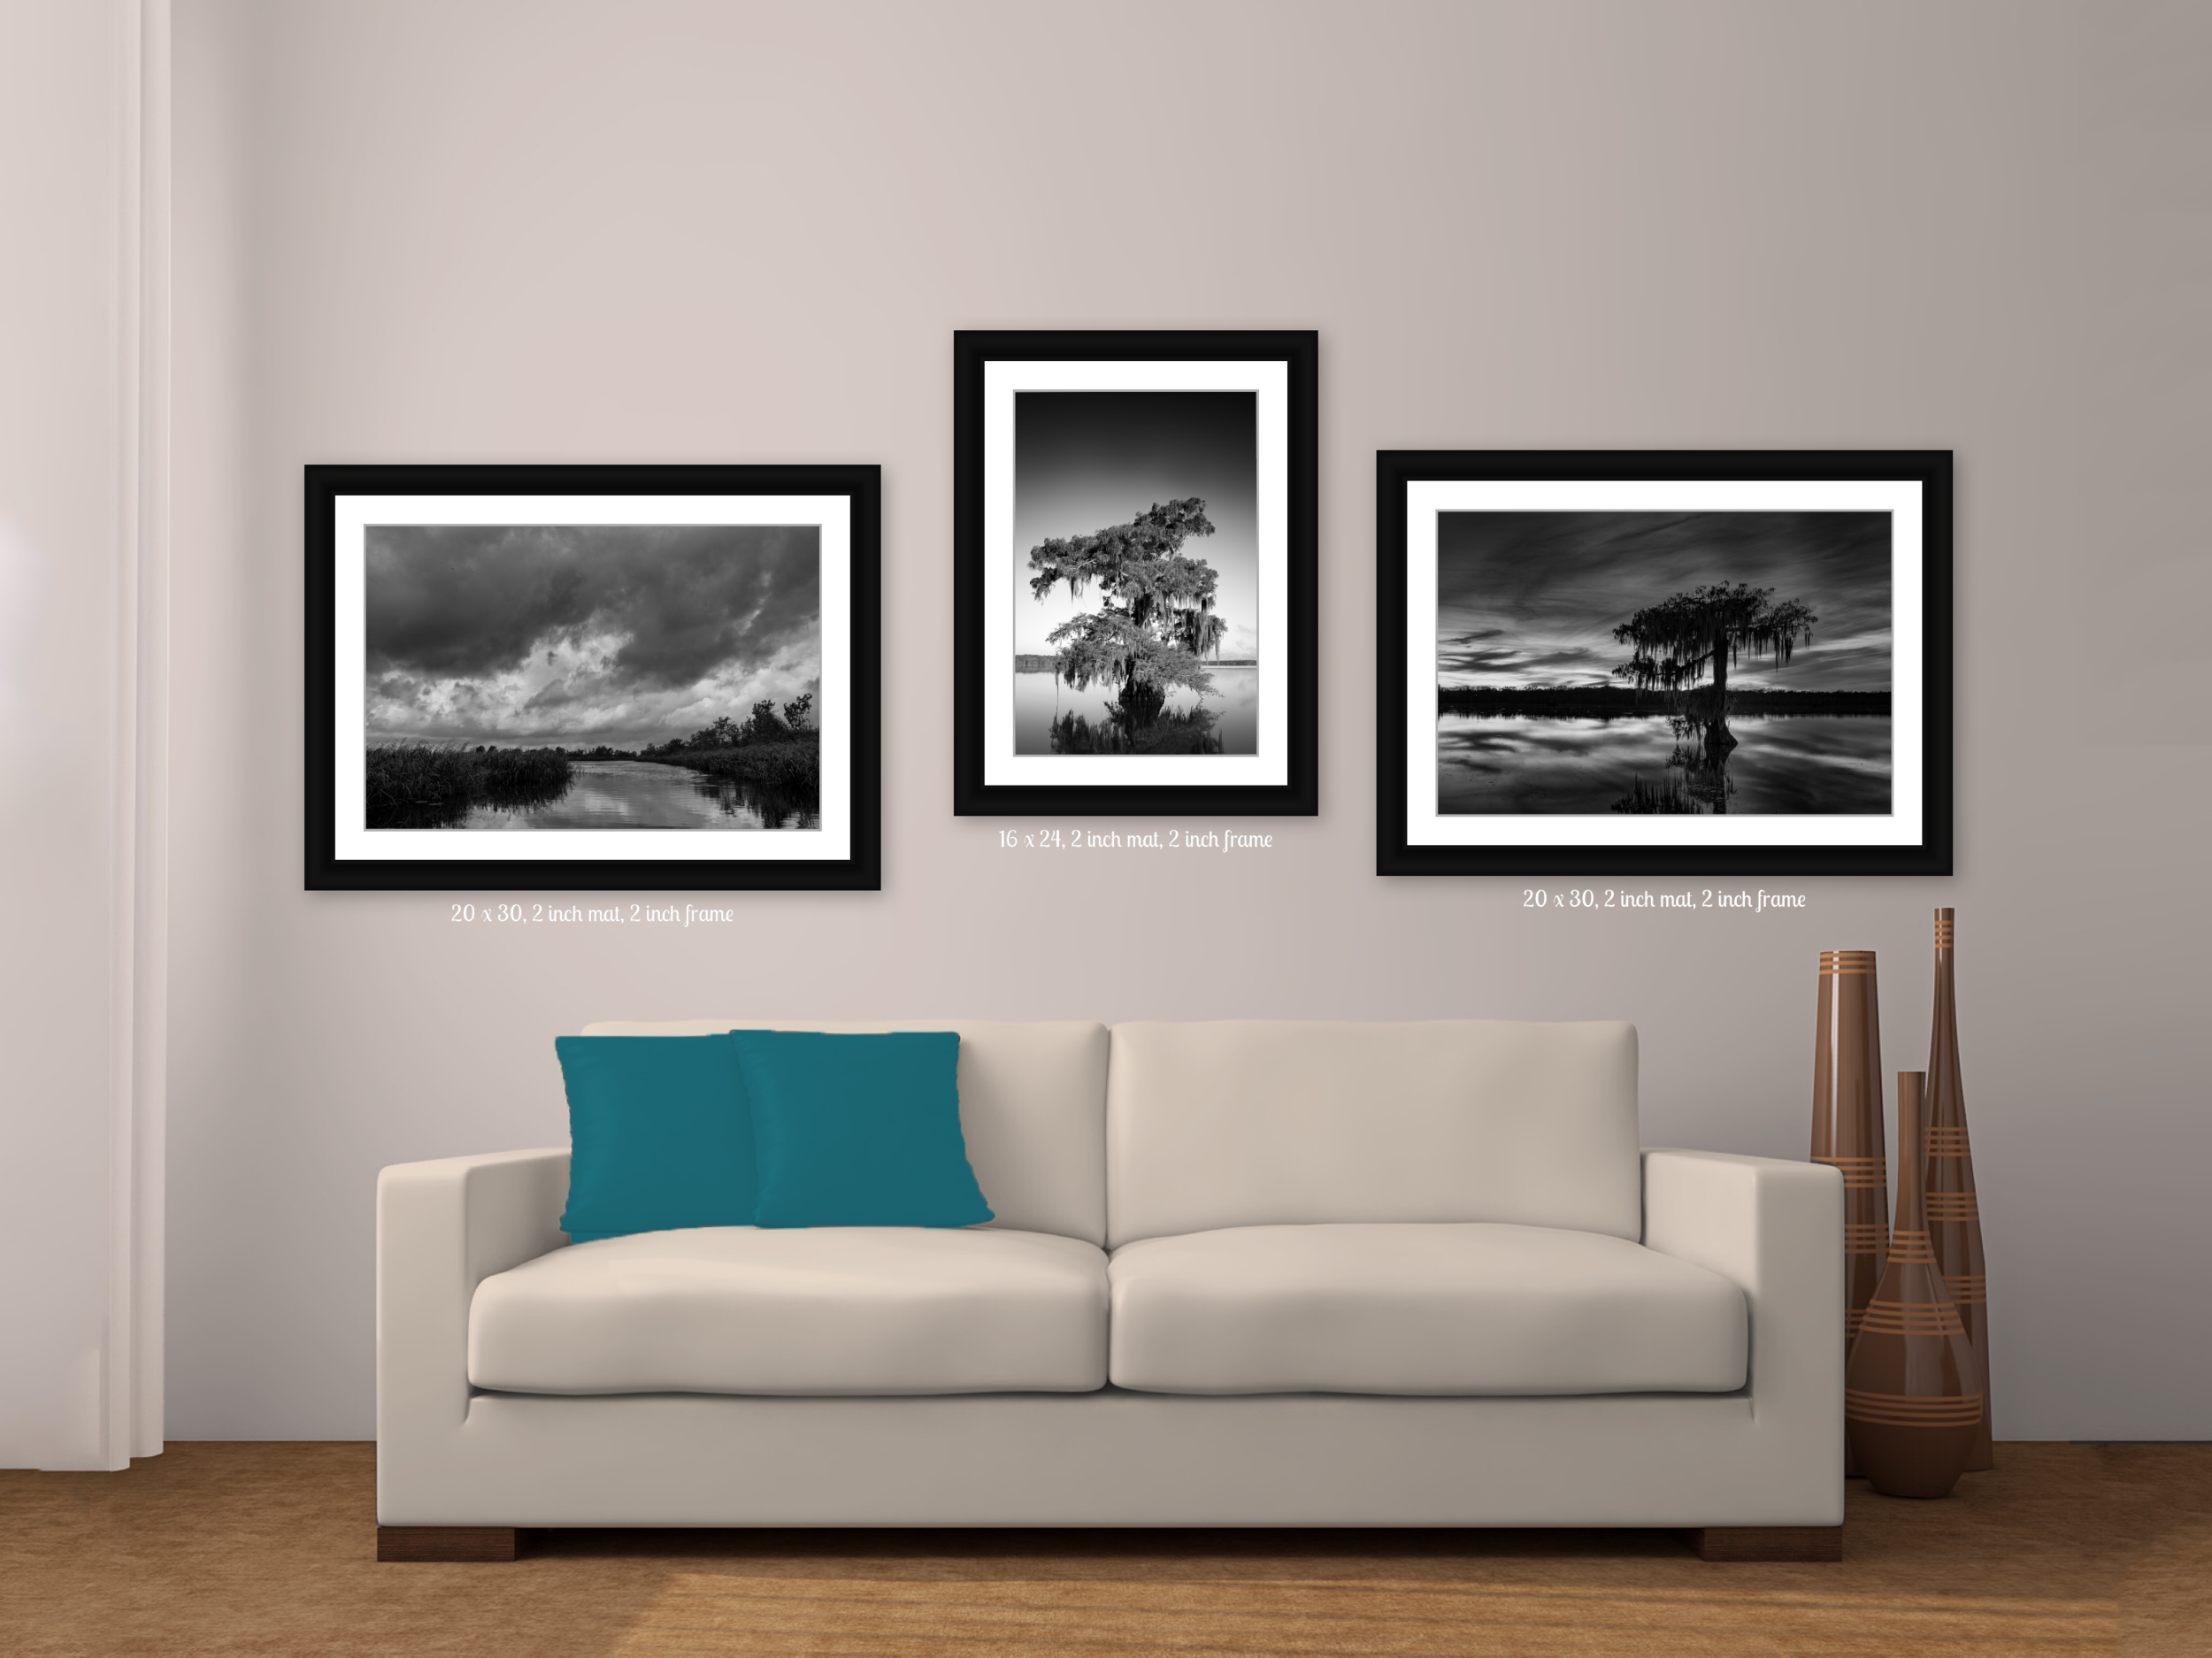 "Black and White Swamp Scenes on Living Room Wall. Two 20"" x 30"" Horizontal Images and Center 16 x 24 Vertical image in a 2"" wide Frame with Matte"